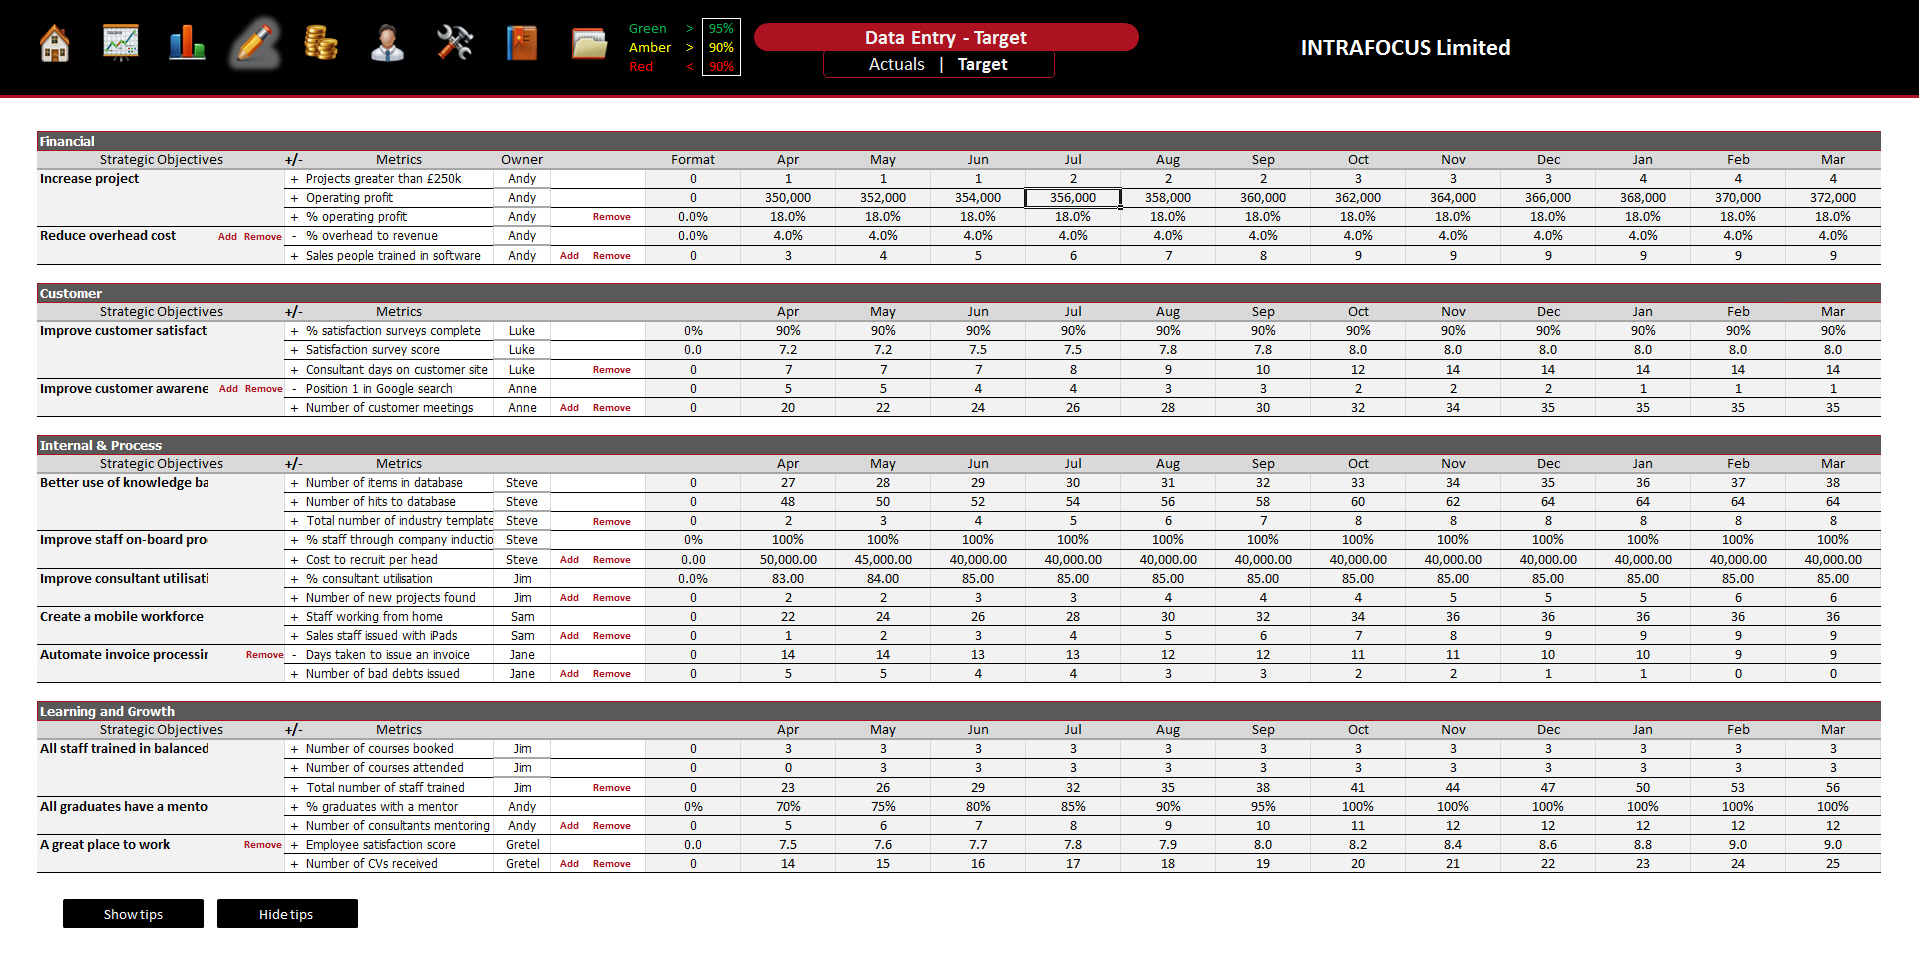 Data Entry Spreadsheet Template Regarding Kpi Scorecard Template Excel With Performance Plus Balanced Together